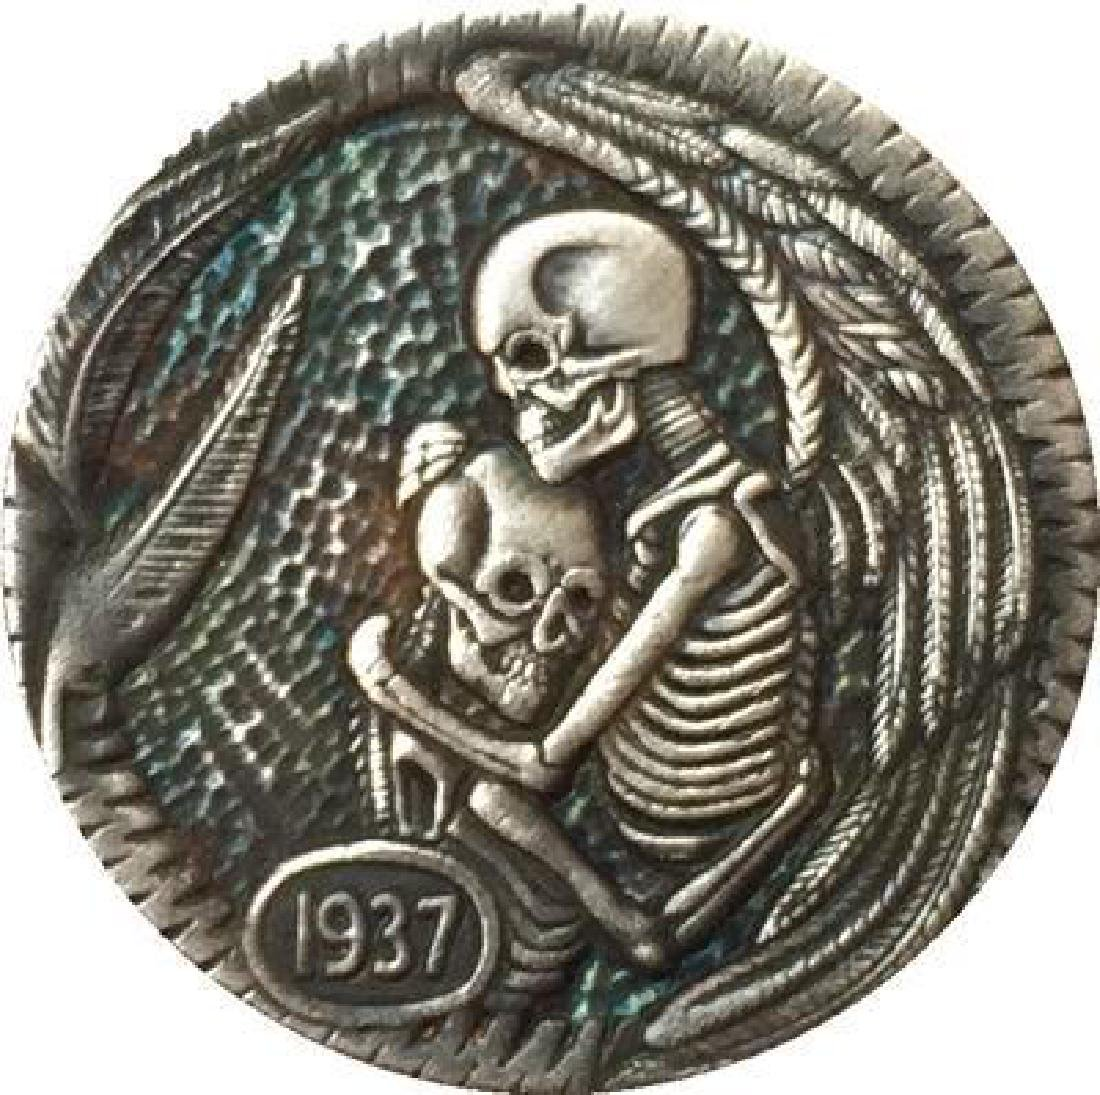 1937 USA Hugging Skeletons Buffalo Coin